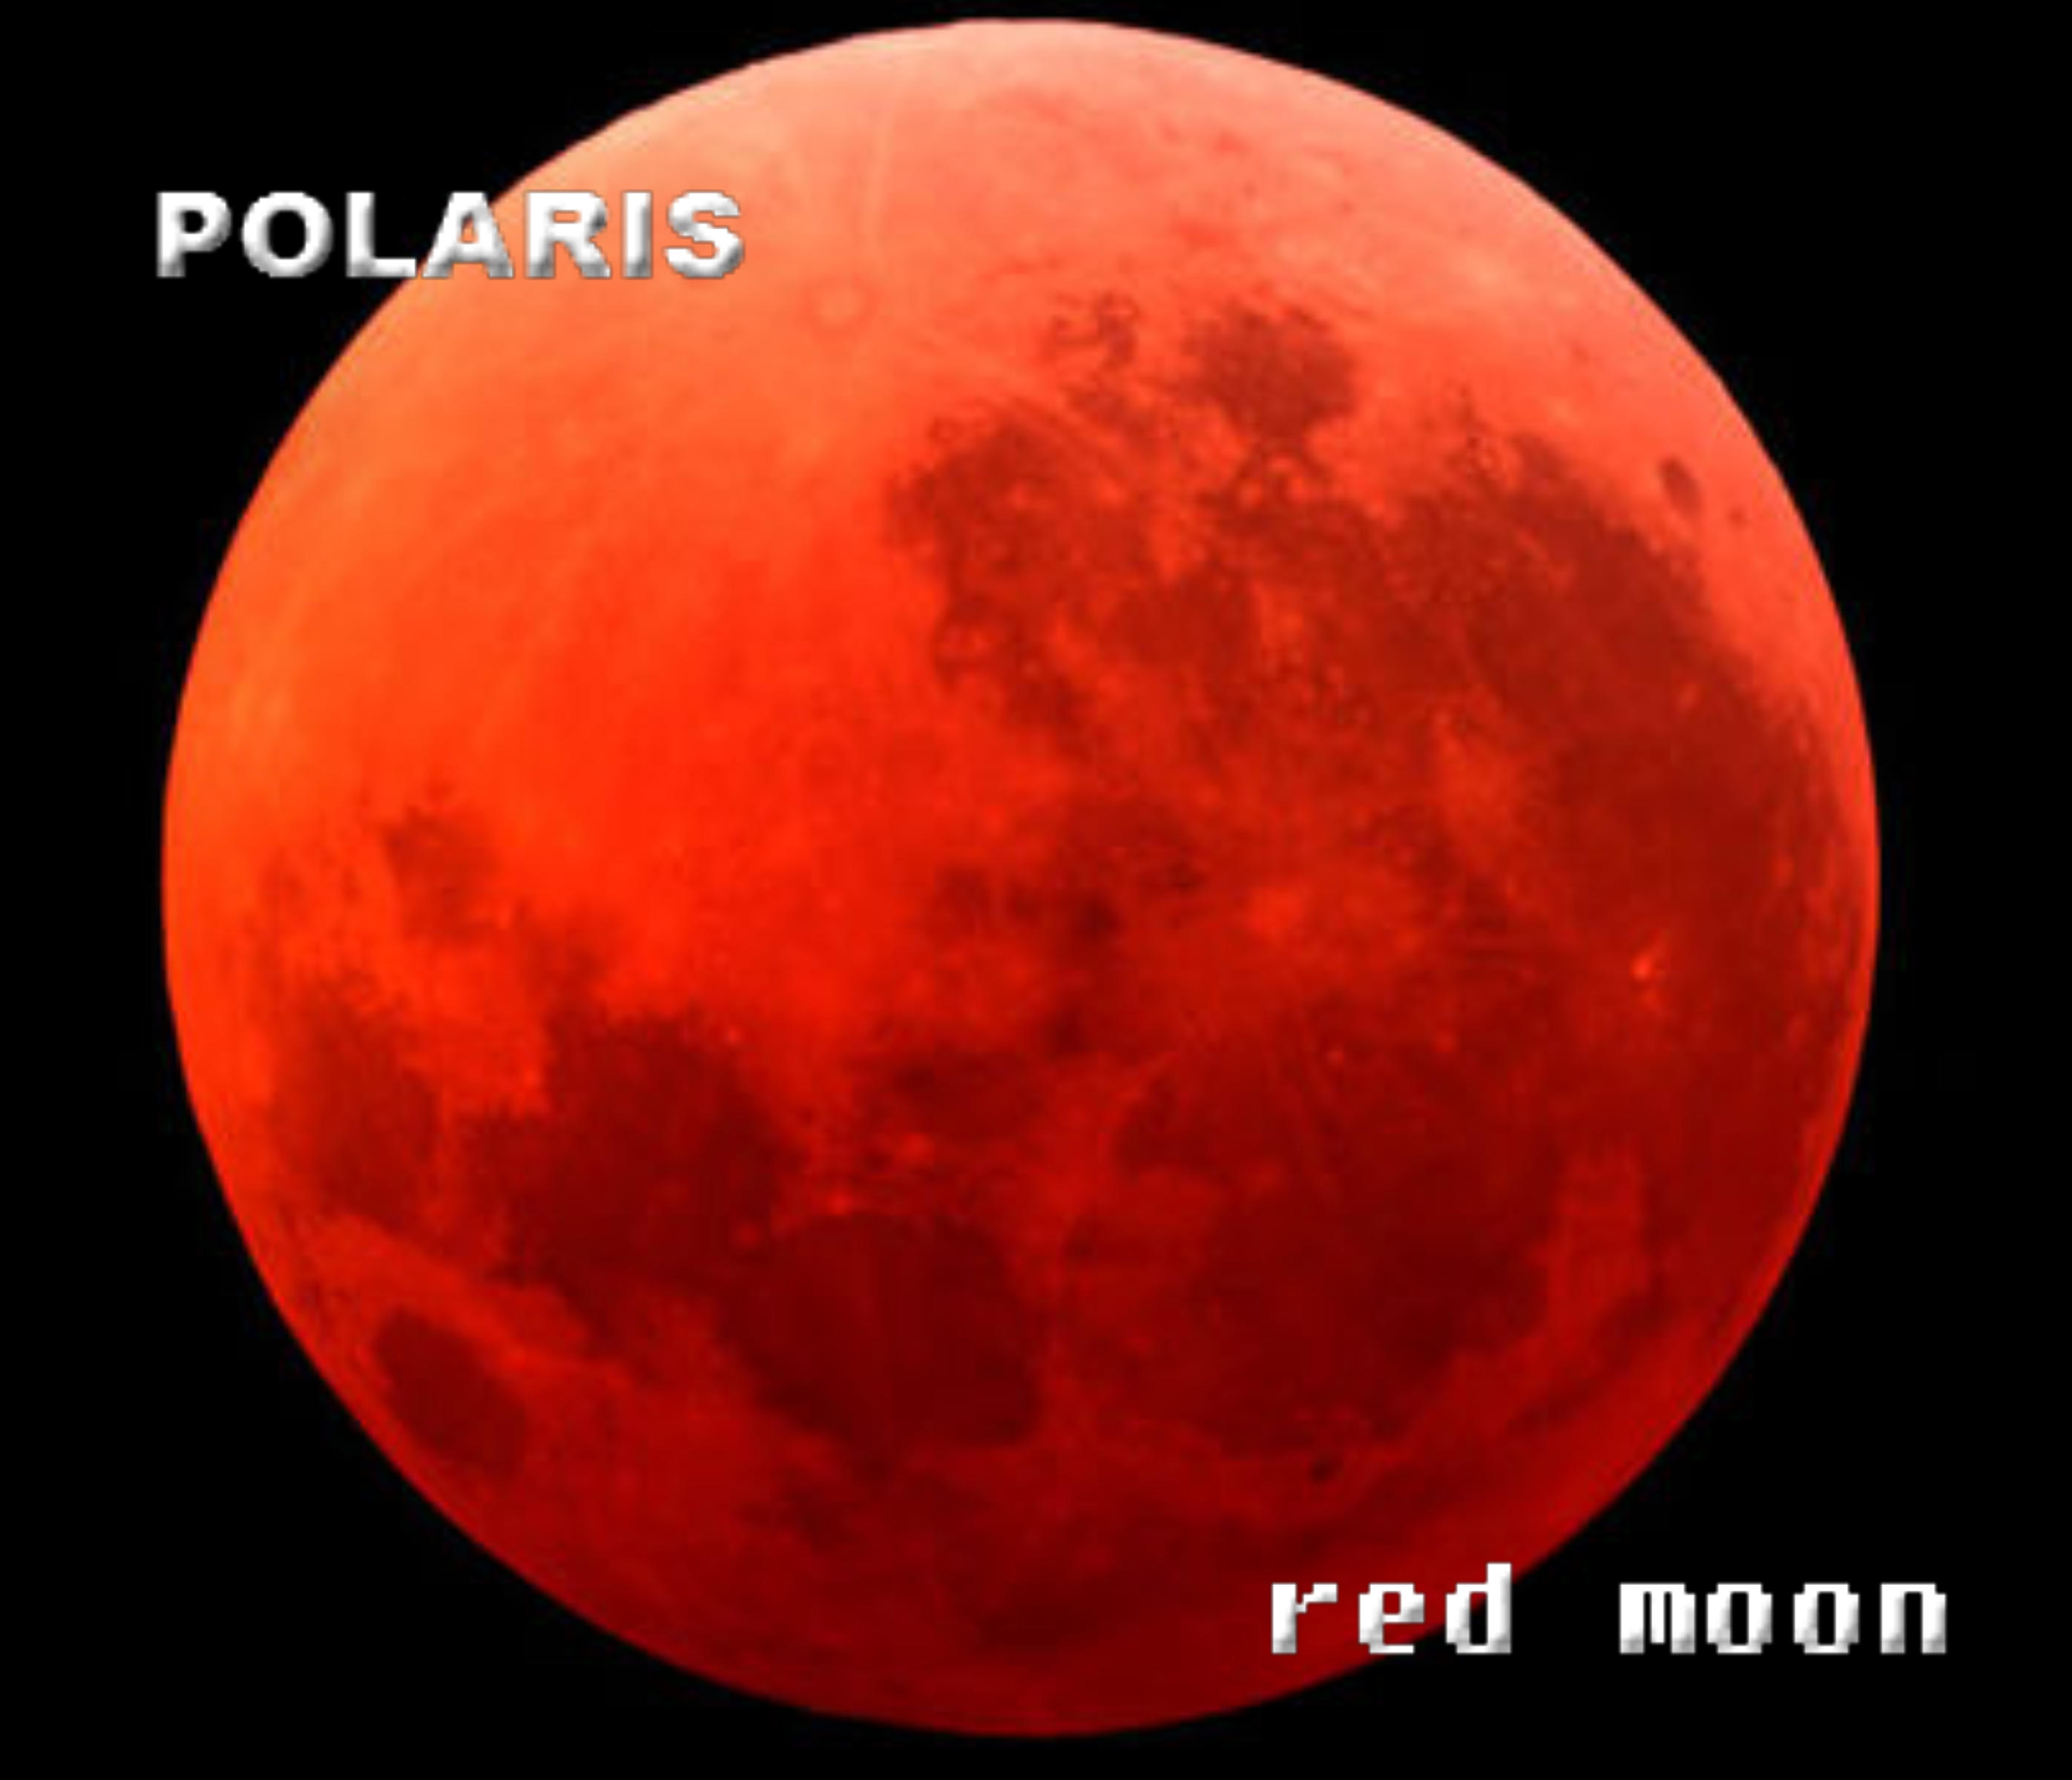 POLARIS-Red Moon